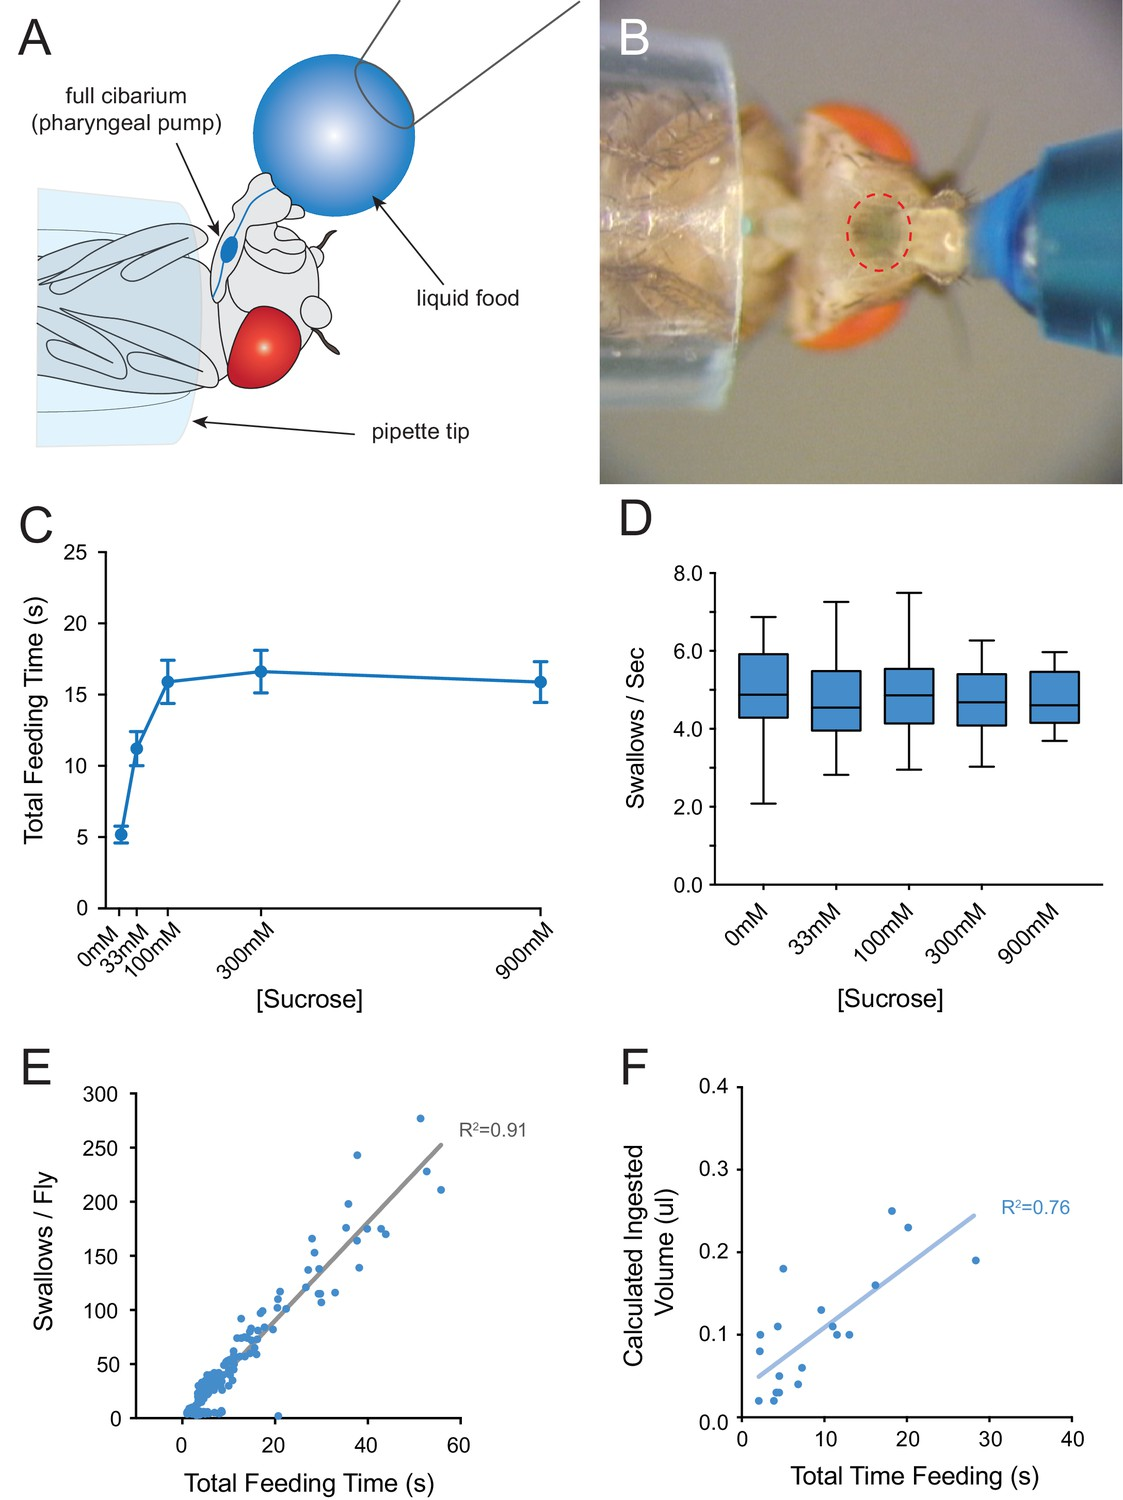 A Receptor And Neuron That Activate Circuit Limiting Sucrose 26 Ring Counter Logic Diagram B Timing Consumption Of In Modified Pharyngeal Pumping Assay